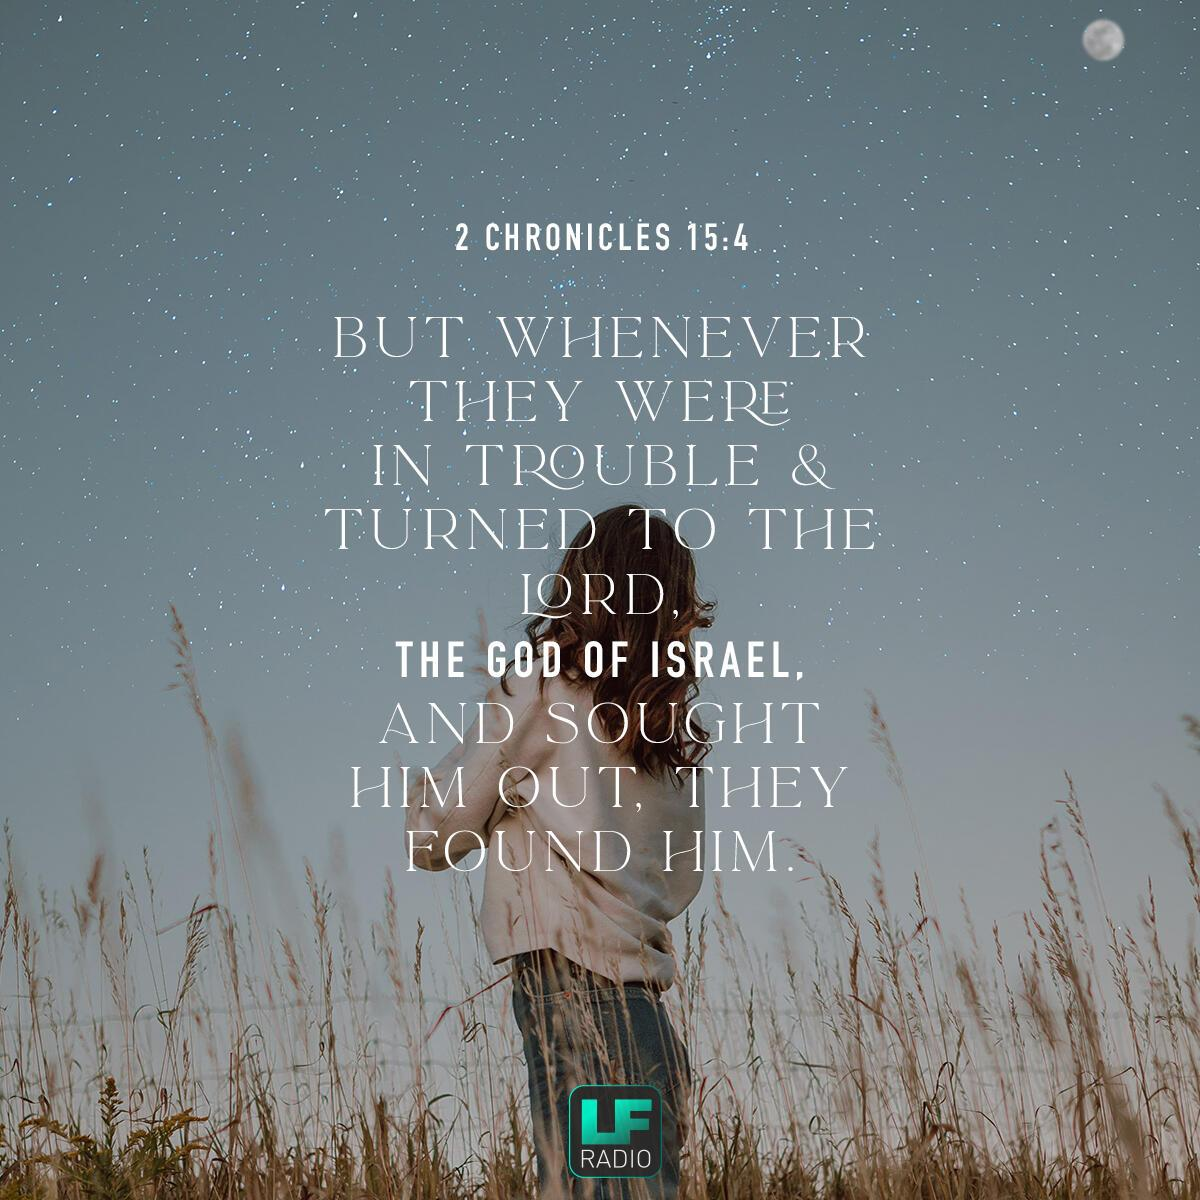 2 Chronicles 15:4